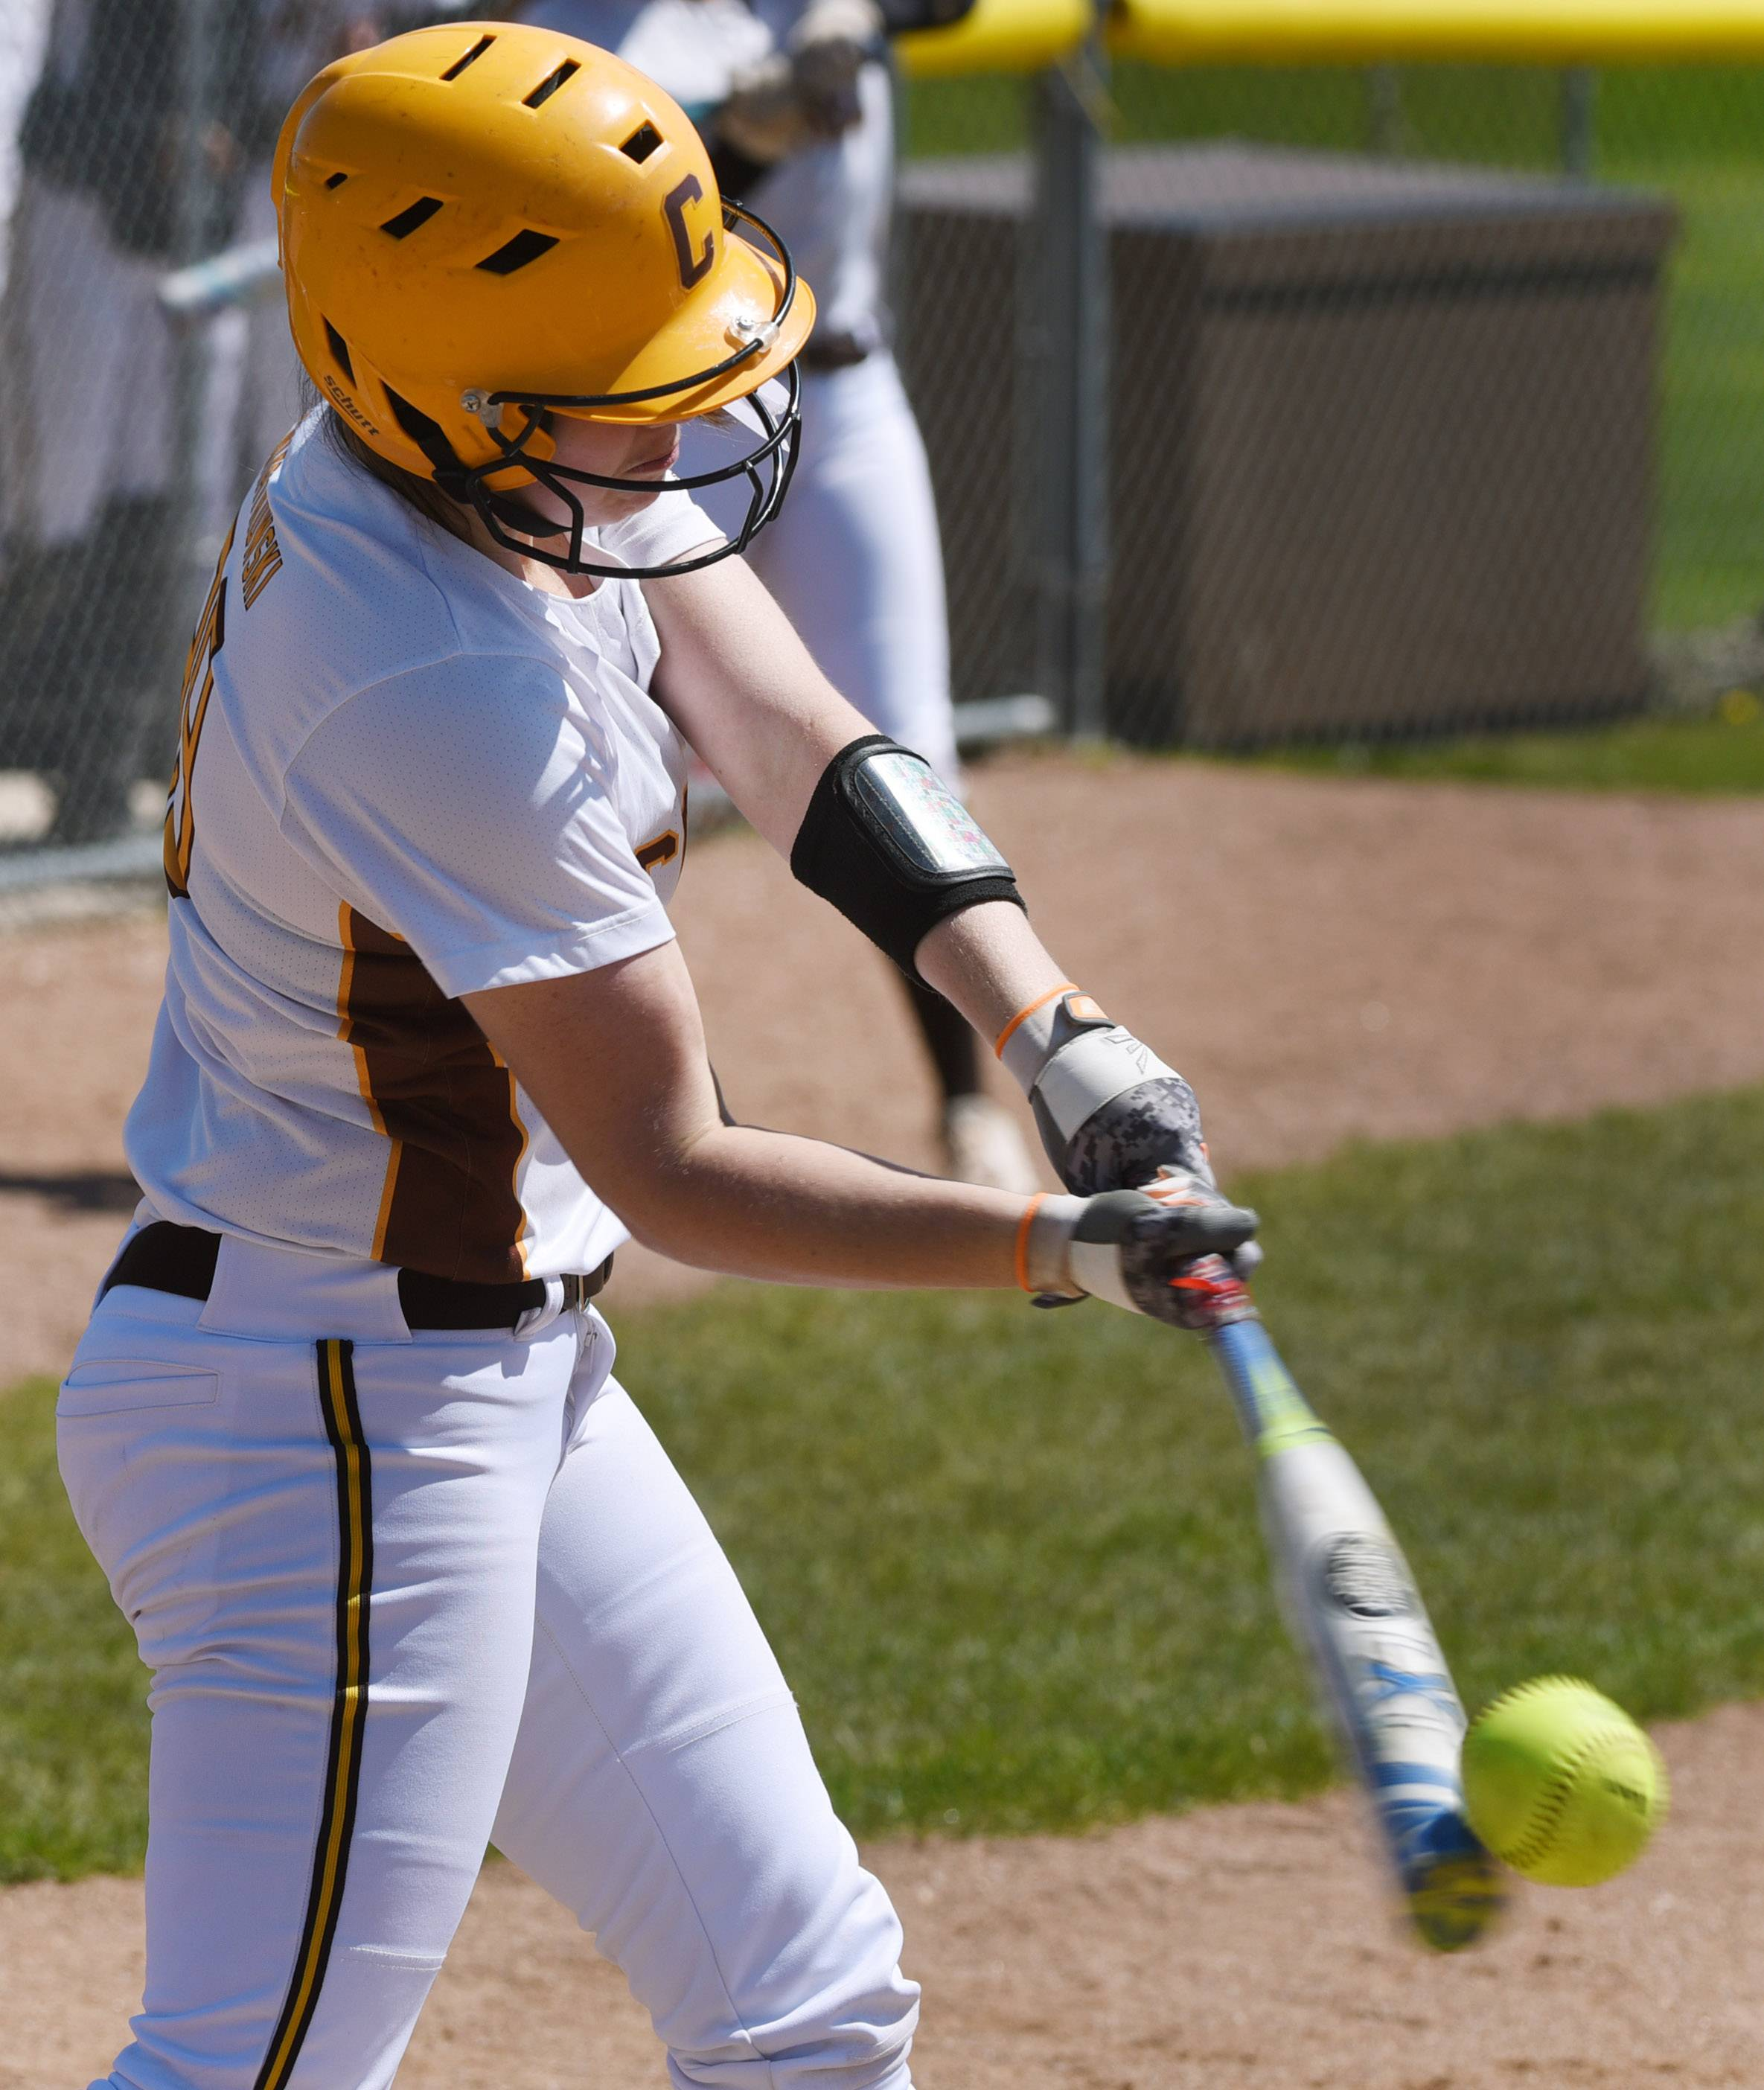 The bat flexes as Carmel's Jordan Swiatkowski fouls off a pitch during the first game of Saturday's doubleheader against Nazareth in Mundelein.